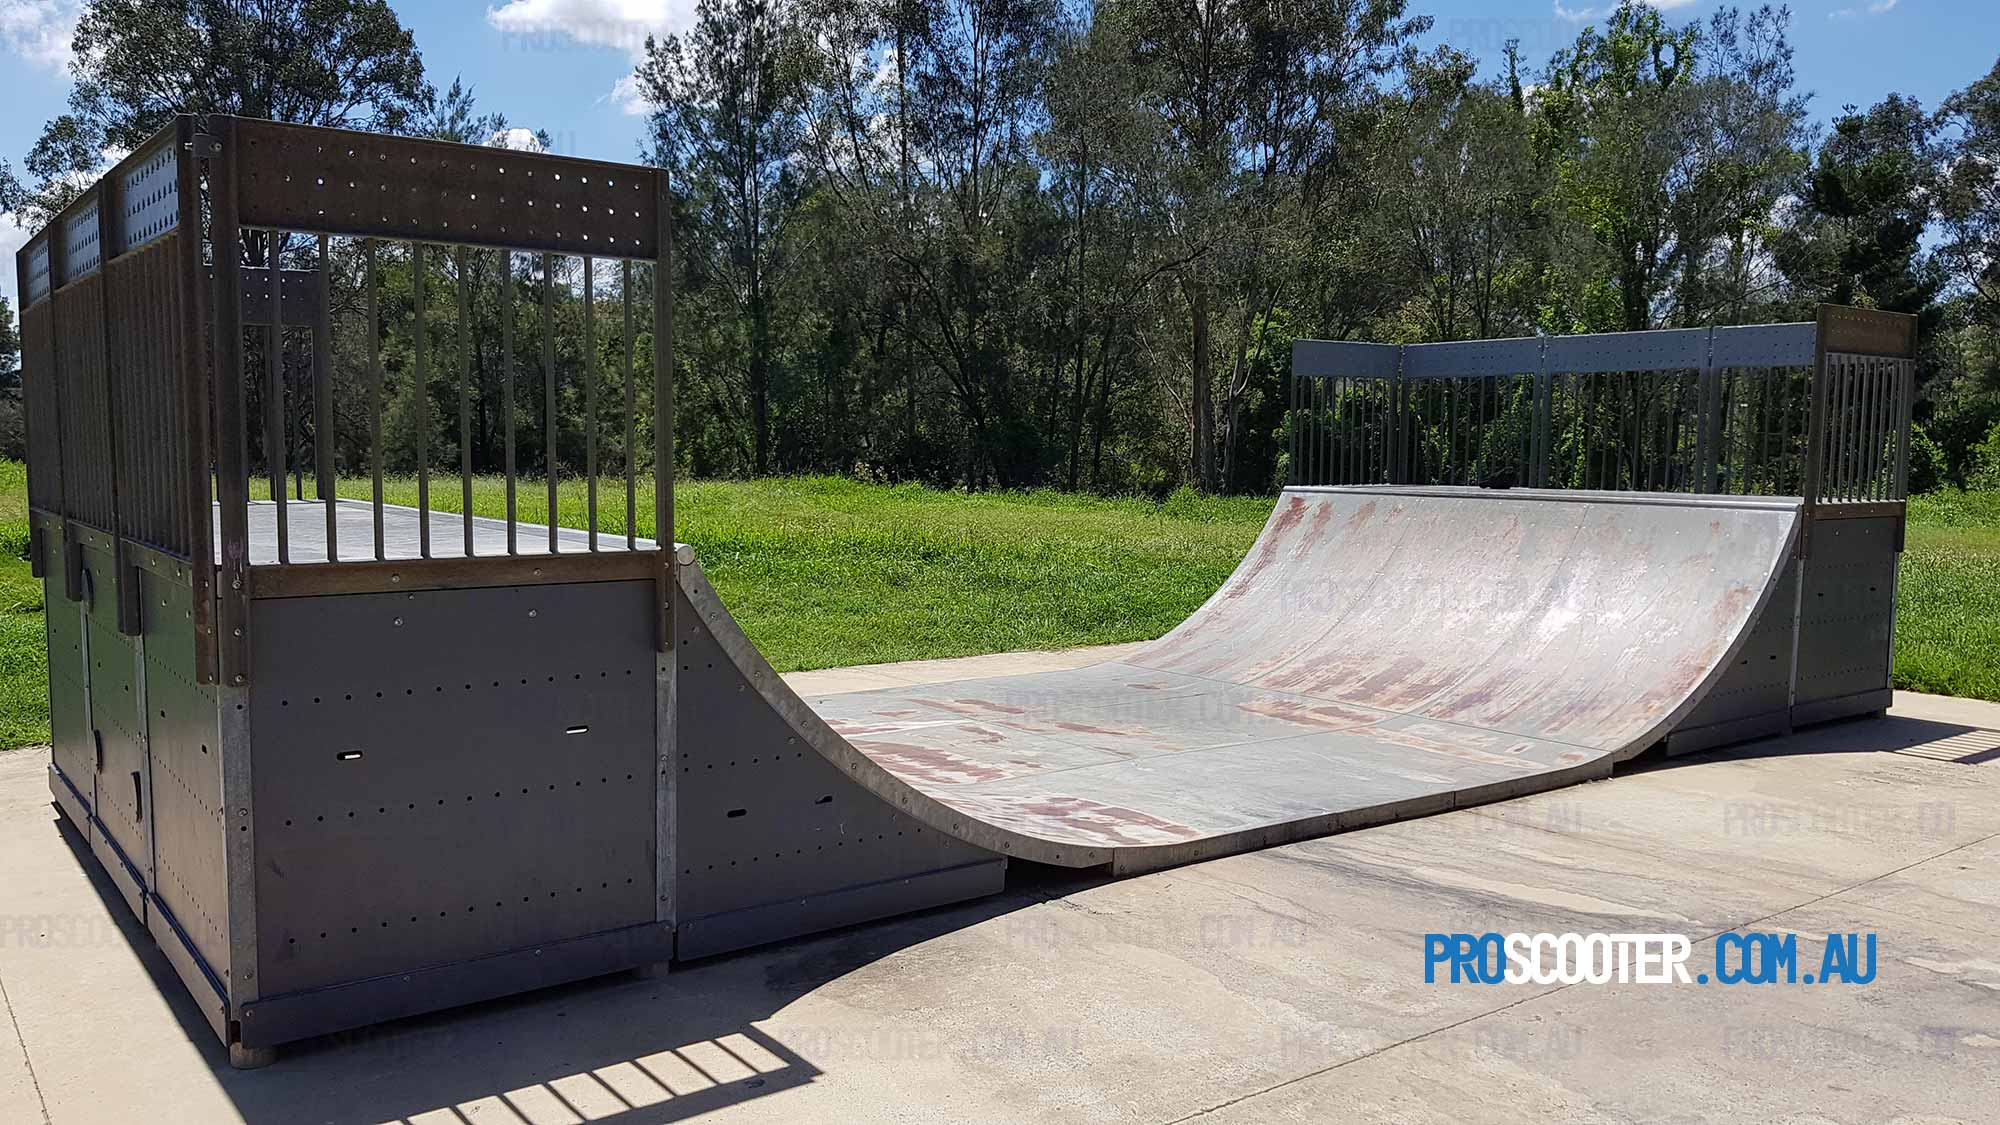 Goodna Skate Park Places To Ride Scooters In Ipswich